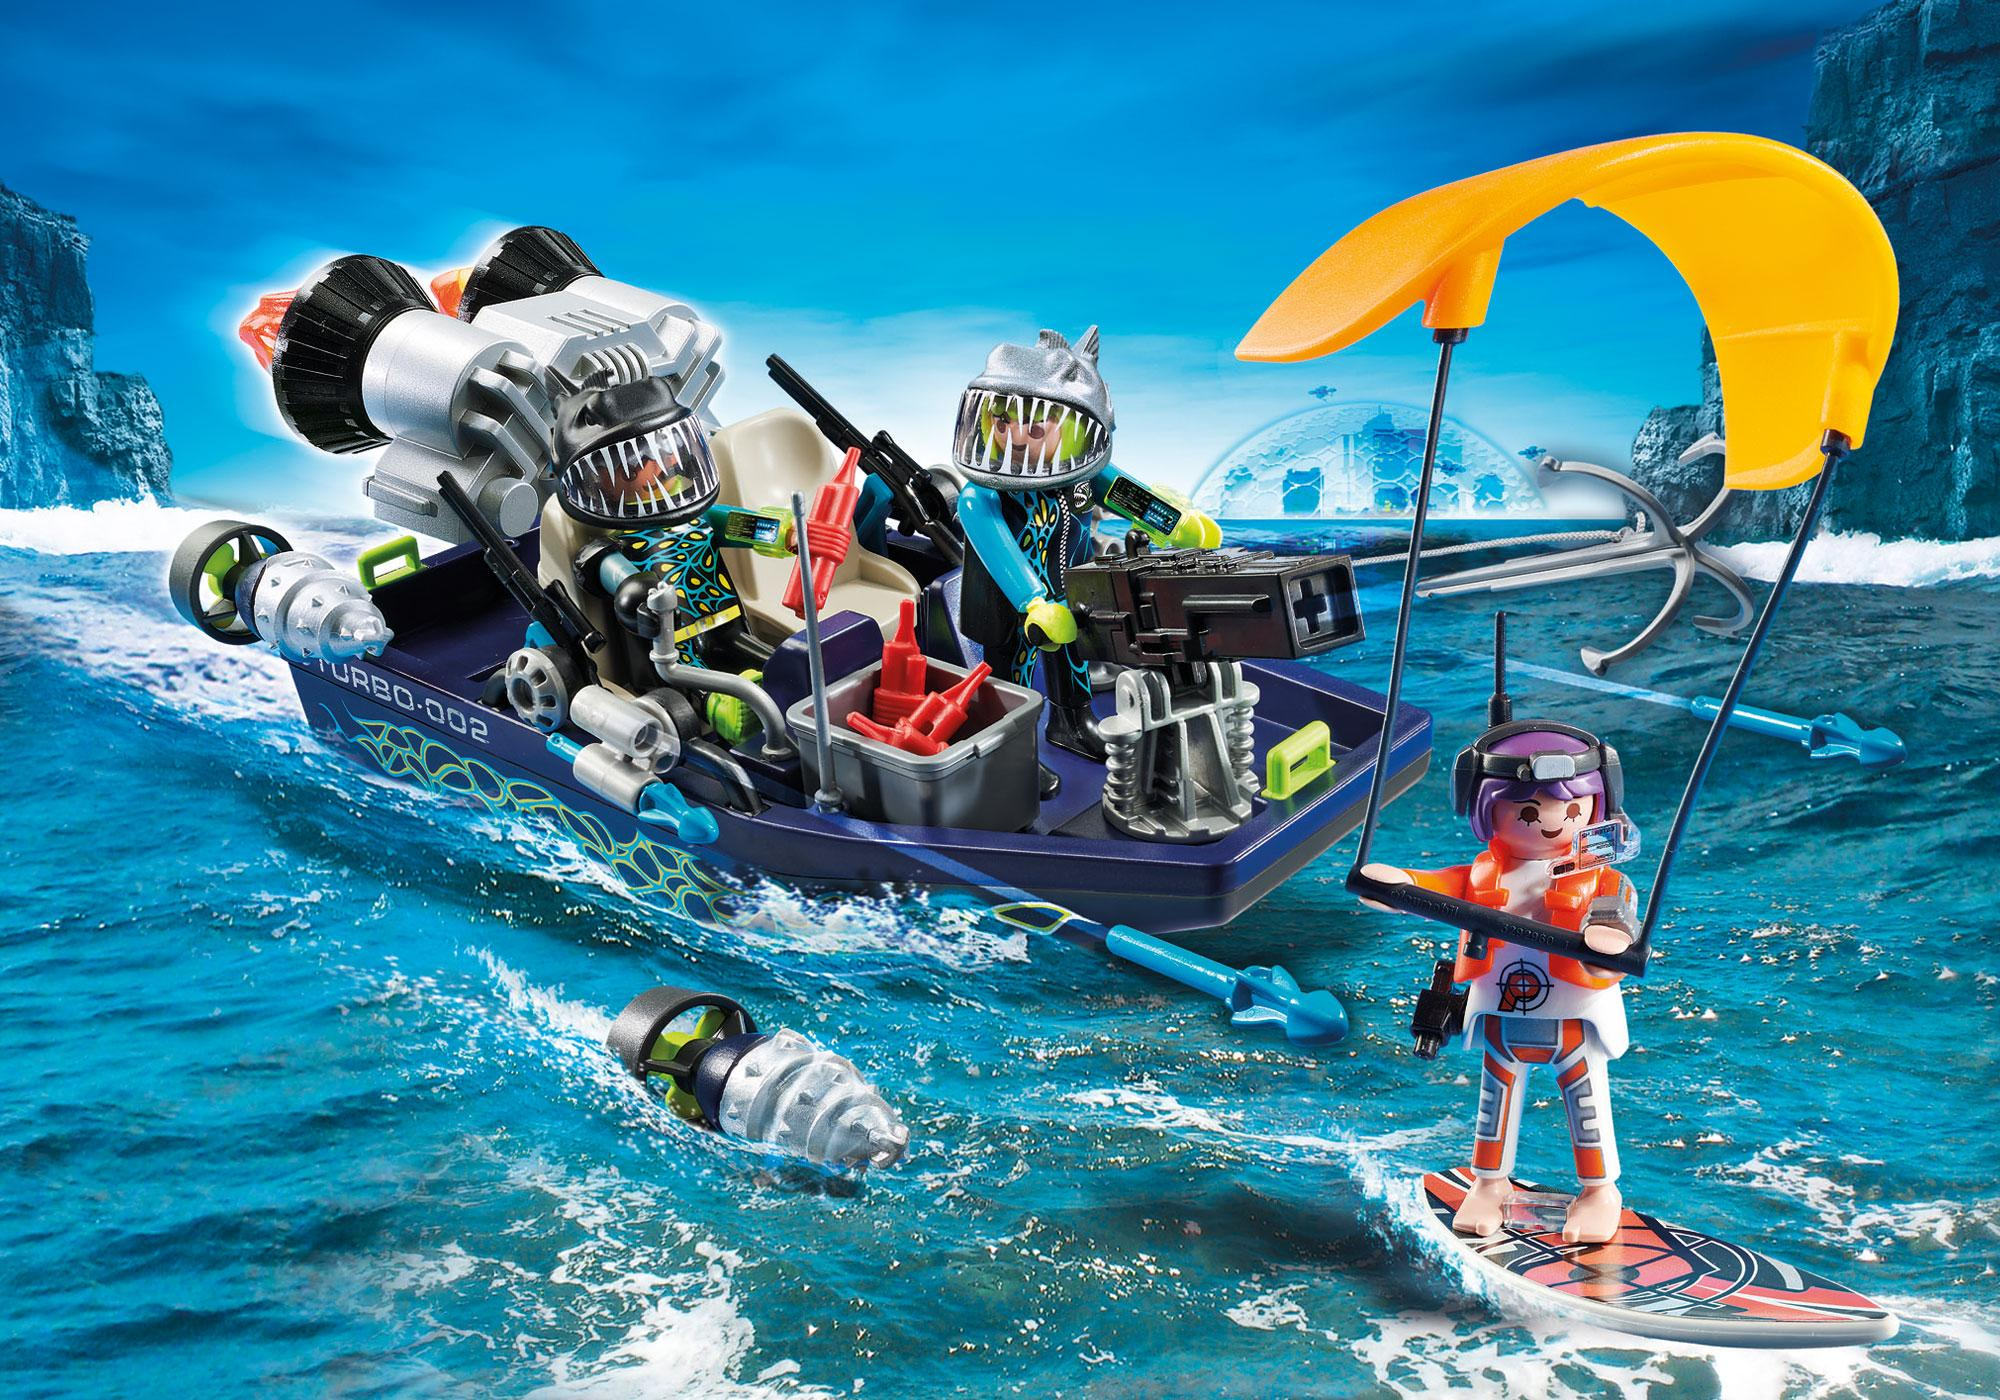 http://media.playmobil.com/i/playmobil/70006_product_detail/TEAM S.H.A.R.K. Harpoon Craft